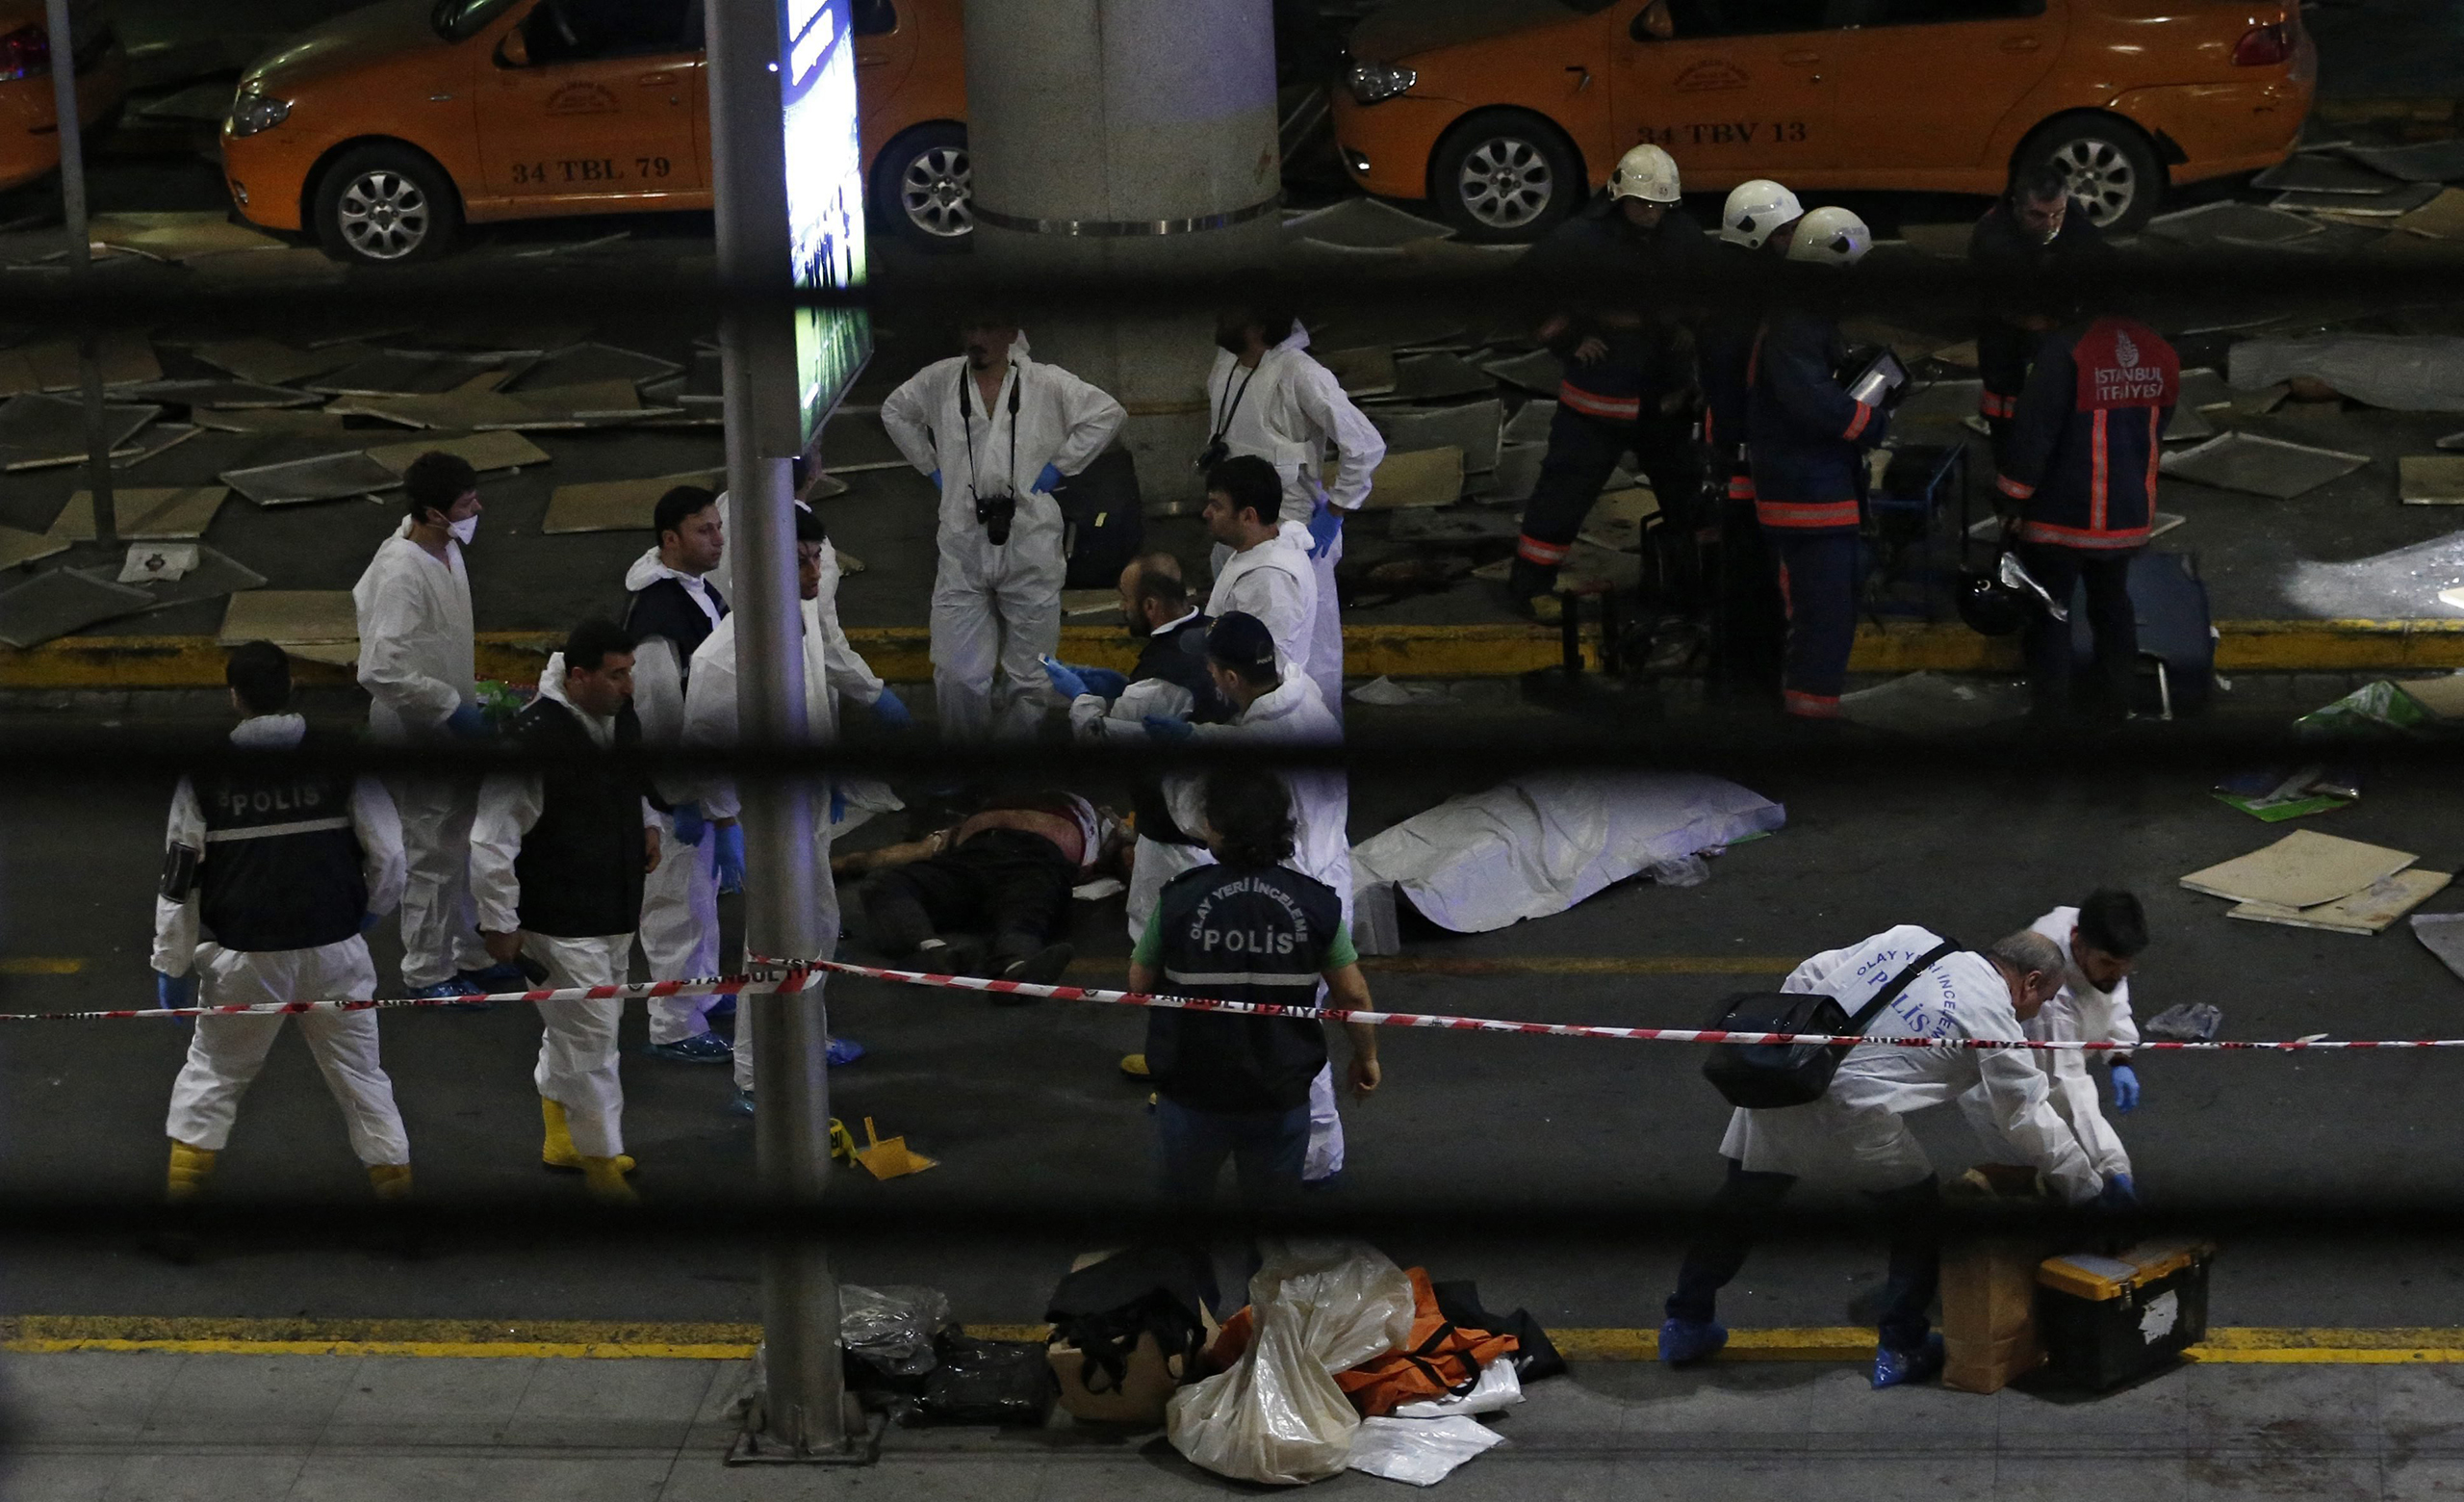 Crime scene investigators work next to a body after a suicide bomb attack at Ataturk Airport in Istanbul on June 28, 2016.